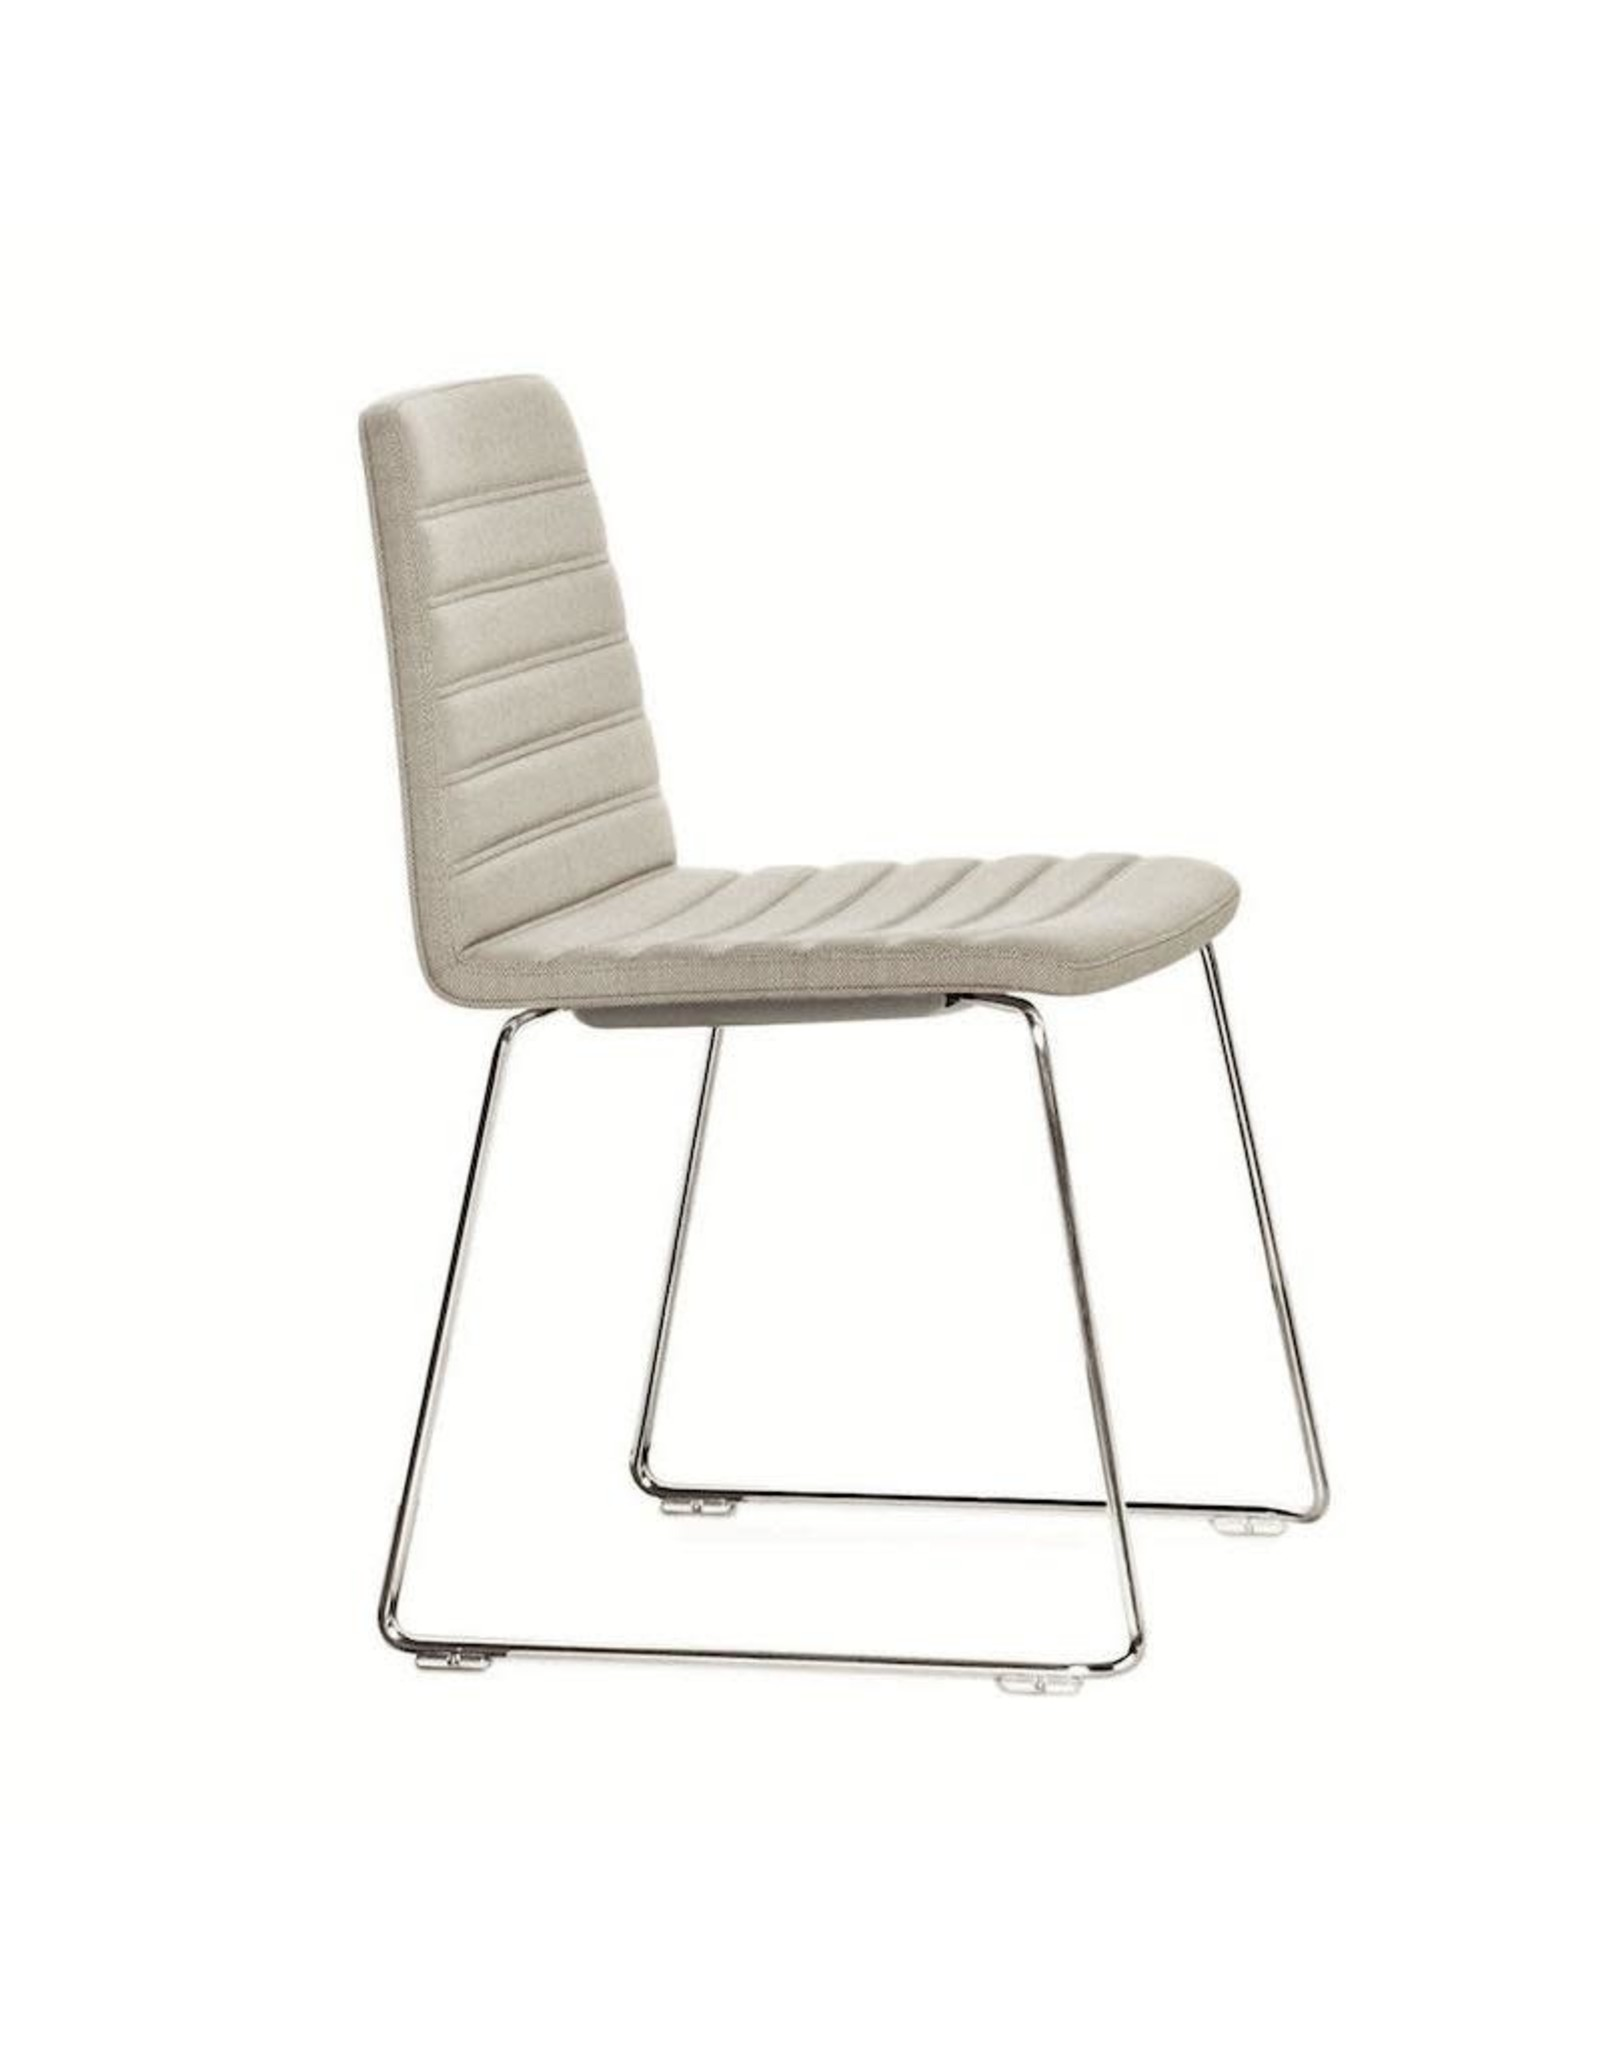 SPINAL CHAIR 44, STACKABLE WITH CHROMED RUNNER LEGS